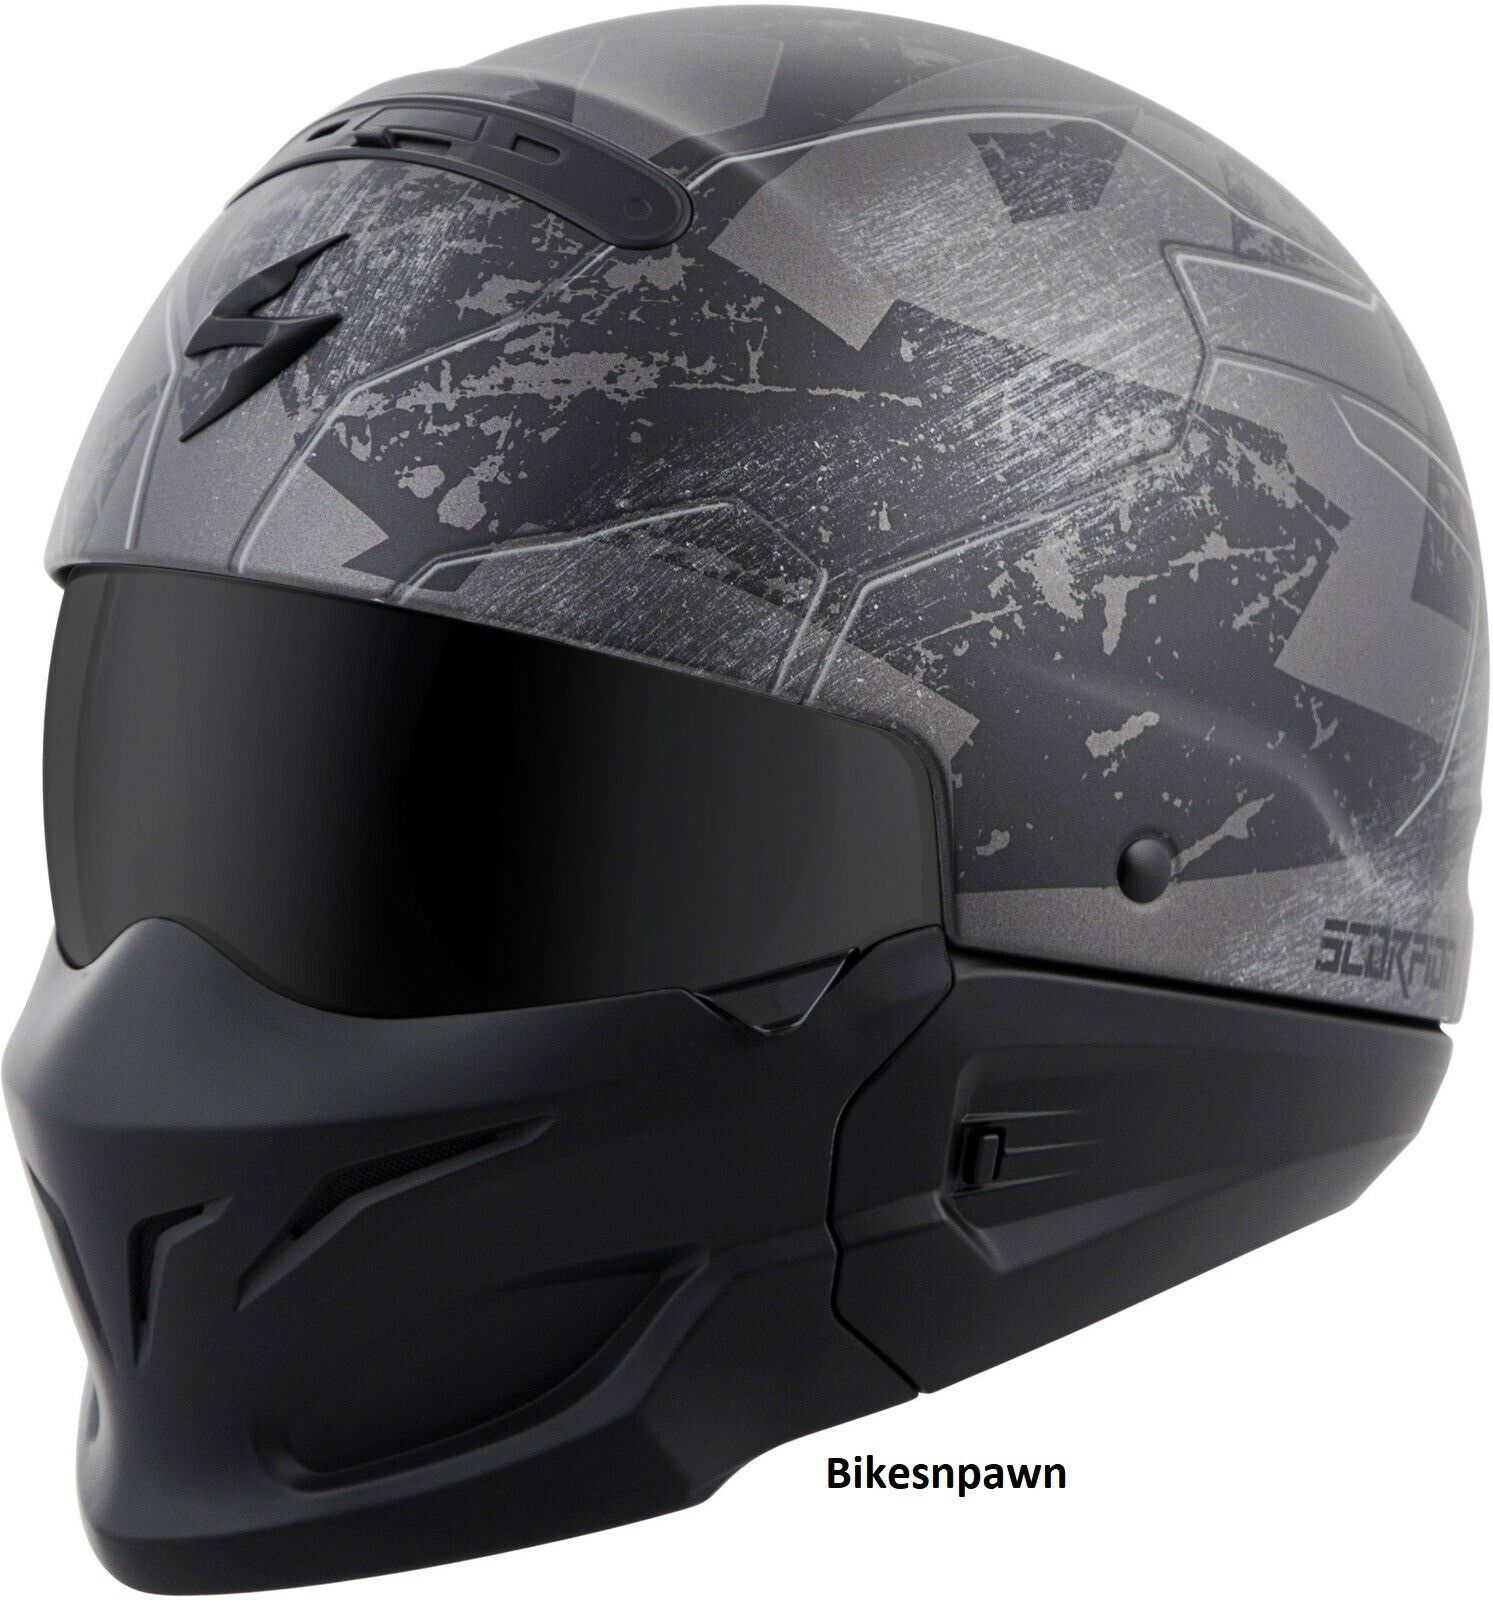 New Size XS Scorpion Covert Ratnik Phantam Black 3 in 1 Motorcycle Helmet DOT